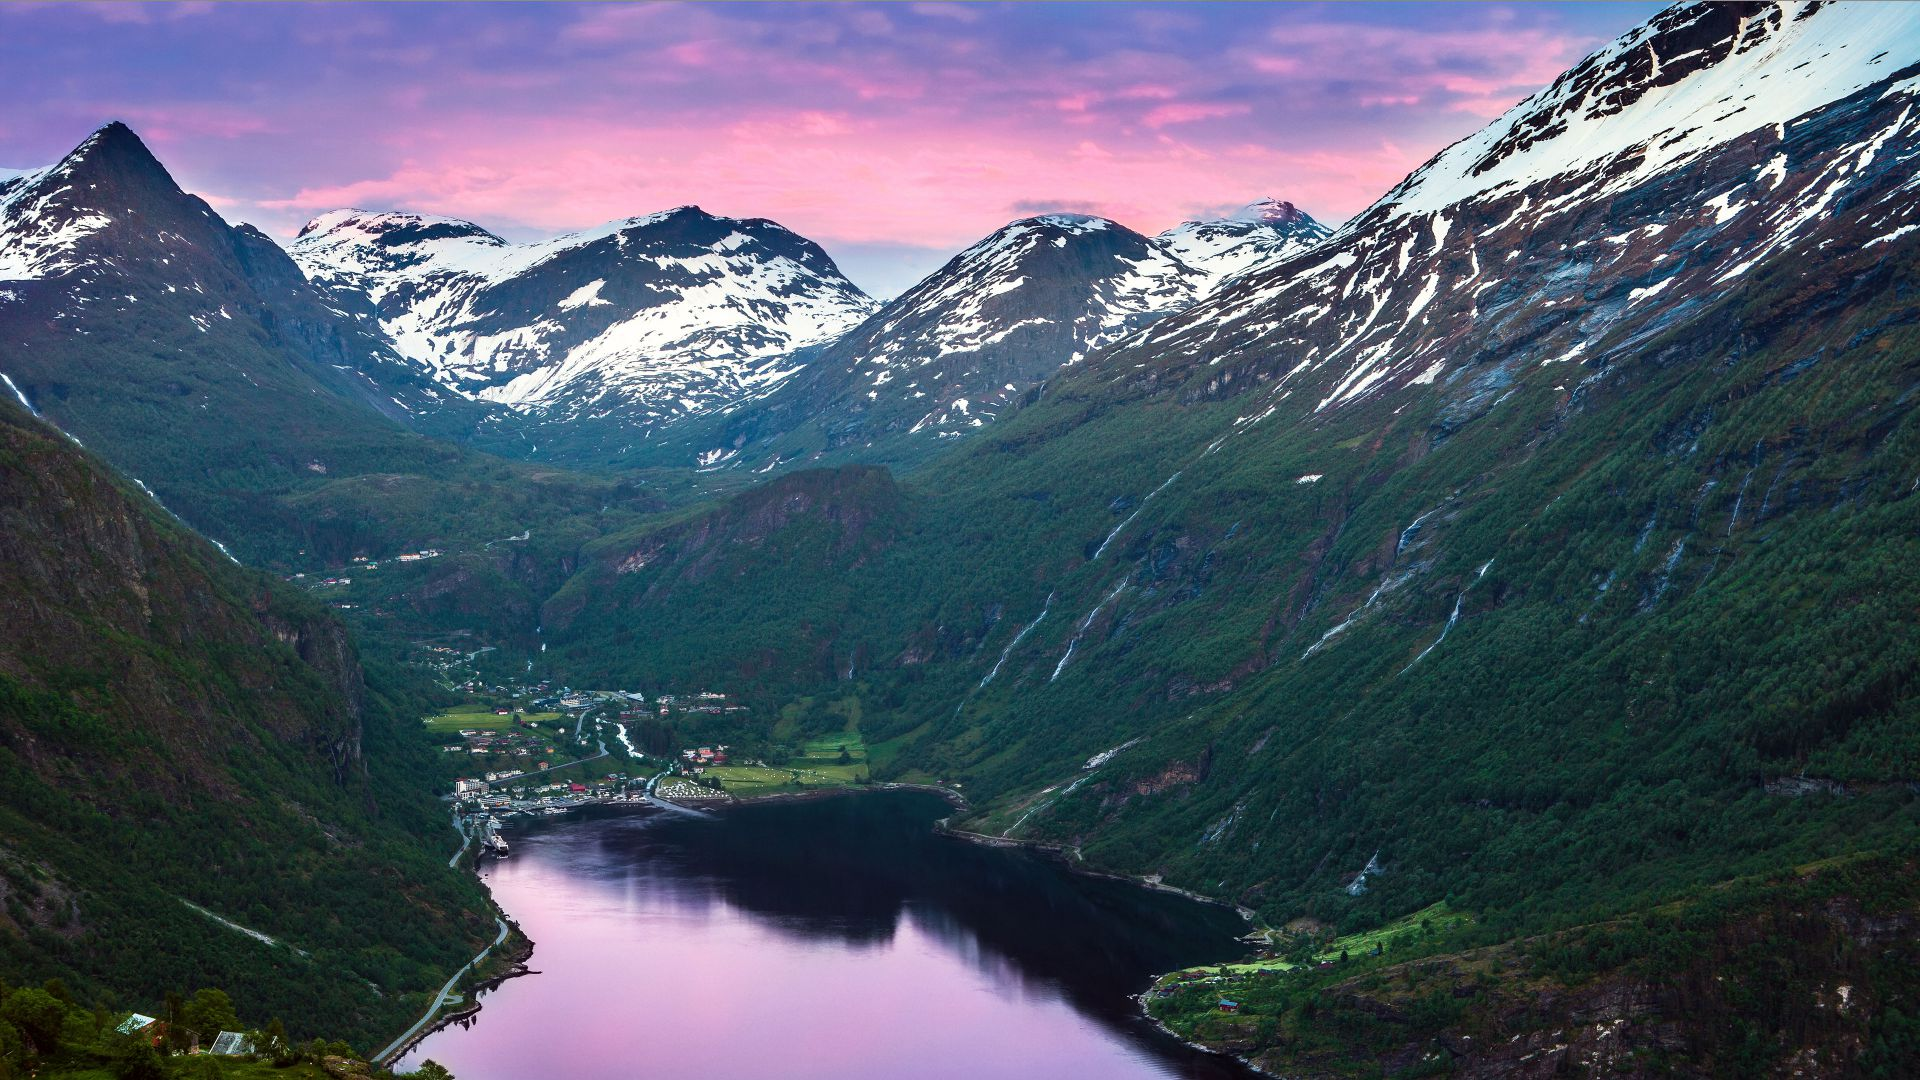 Norway, 5k, 4k wallpaper, fjord, mountains, river, sky (horizontal)